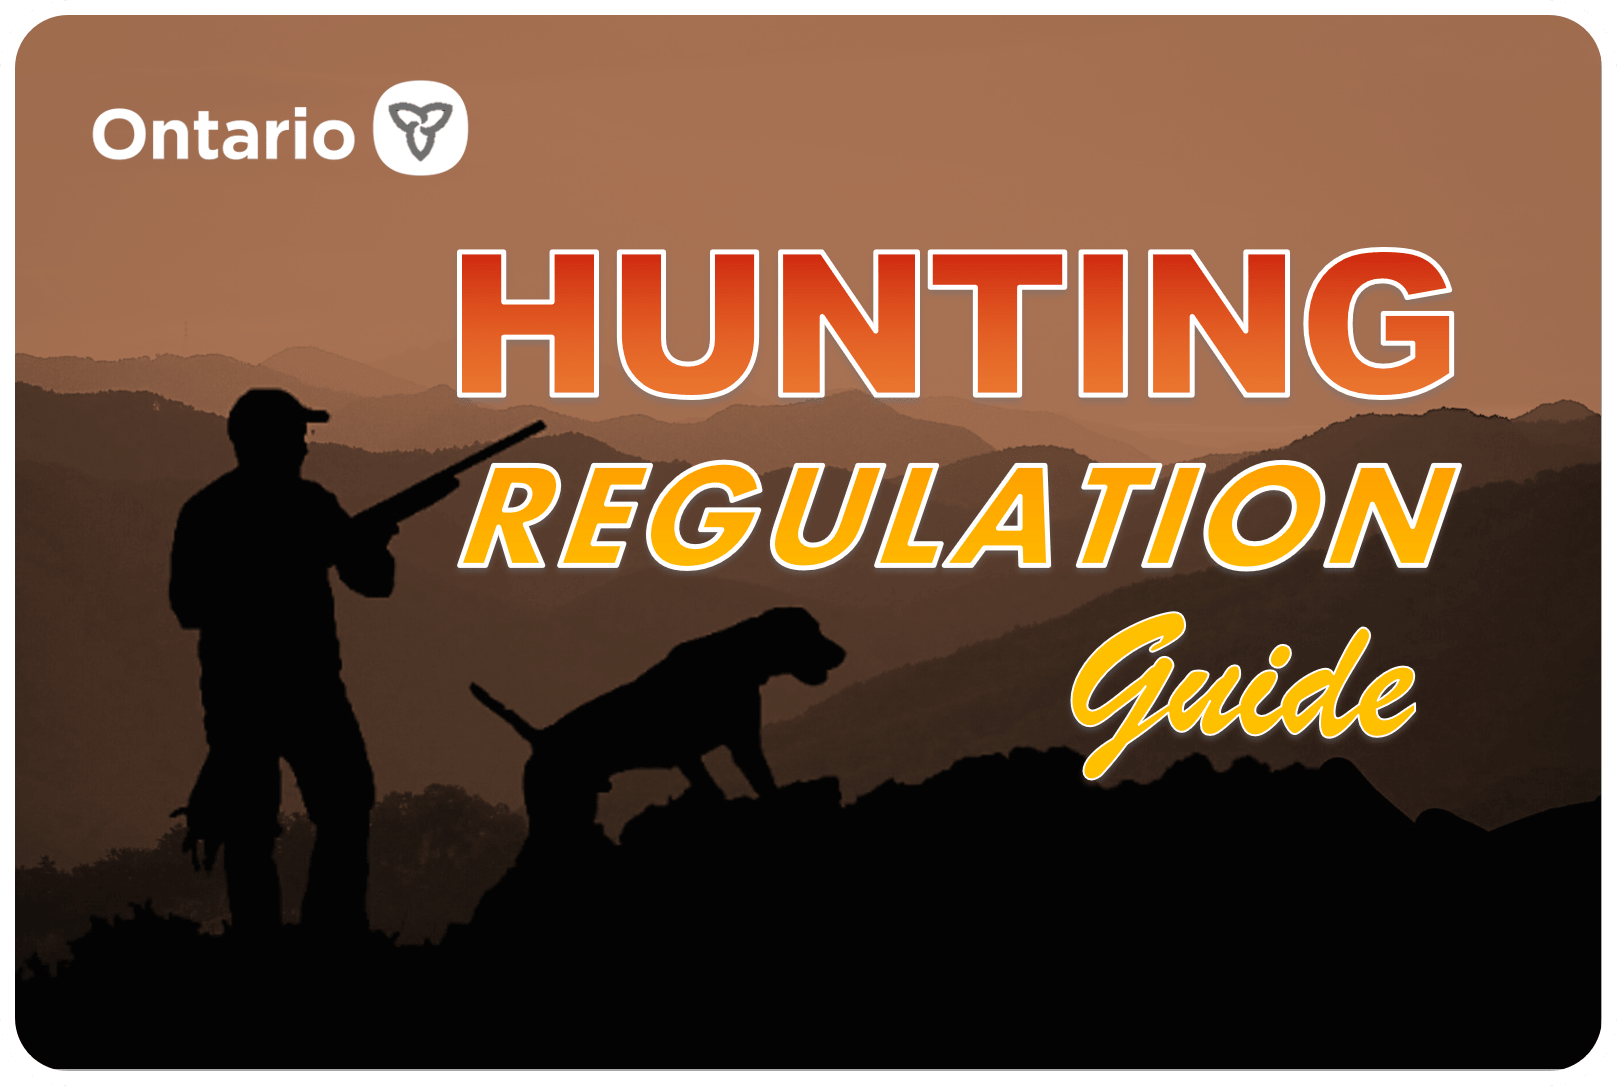 Ontario Hunting Regulation Guide | Fishing World | Hamilton, Ontario, Canada